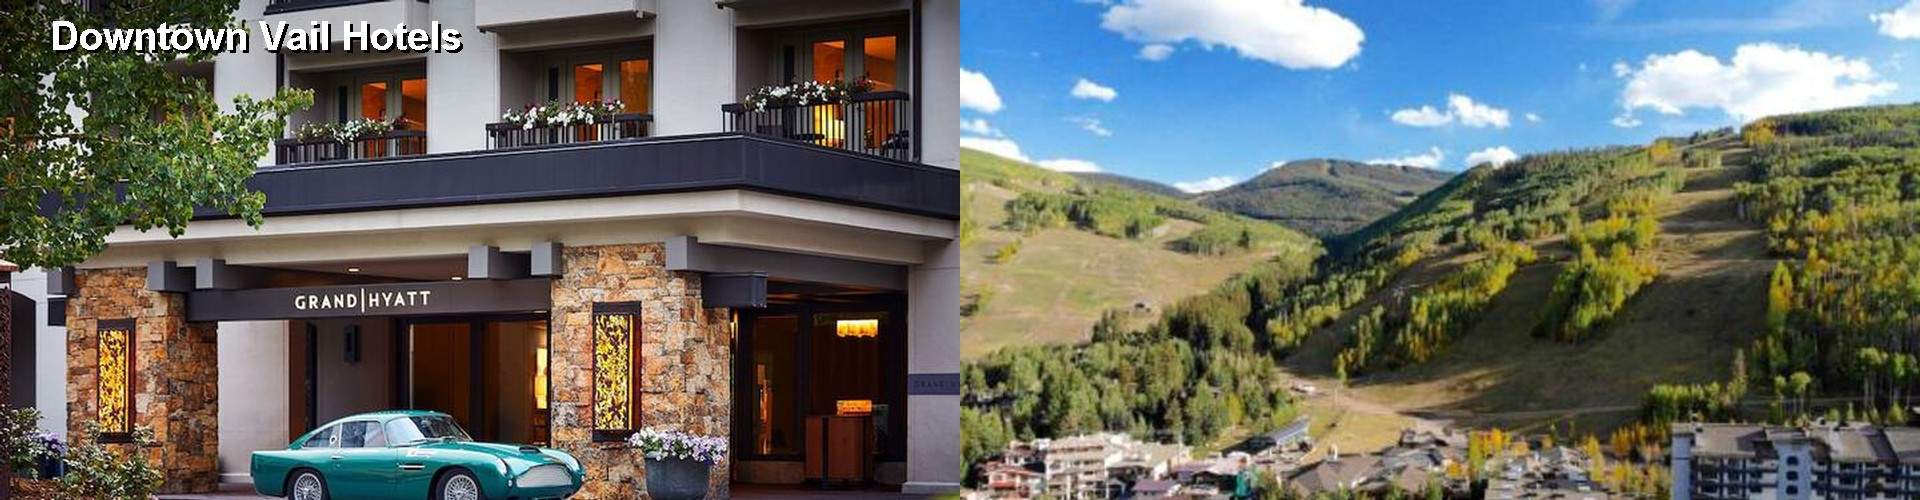 5 Best Hotels near Downtown Vail